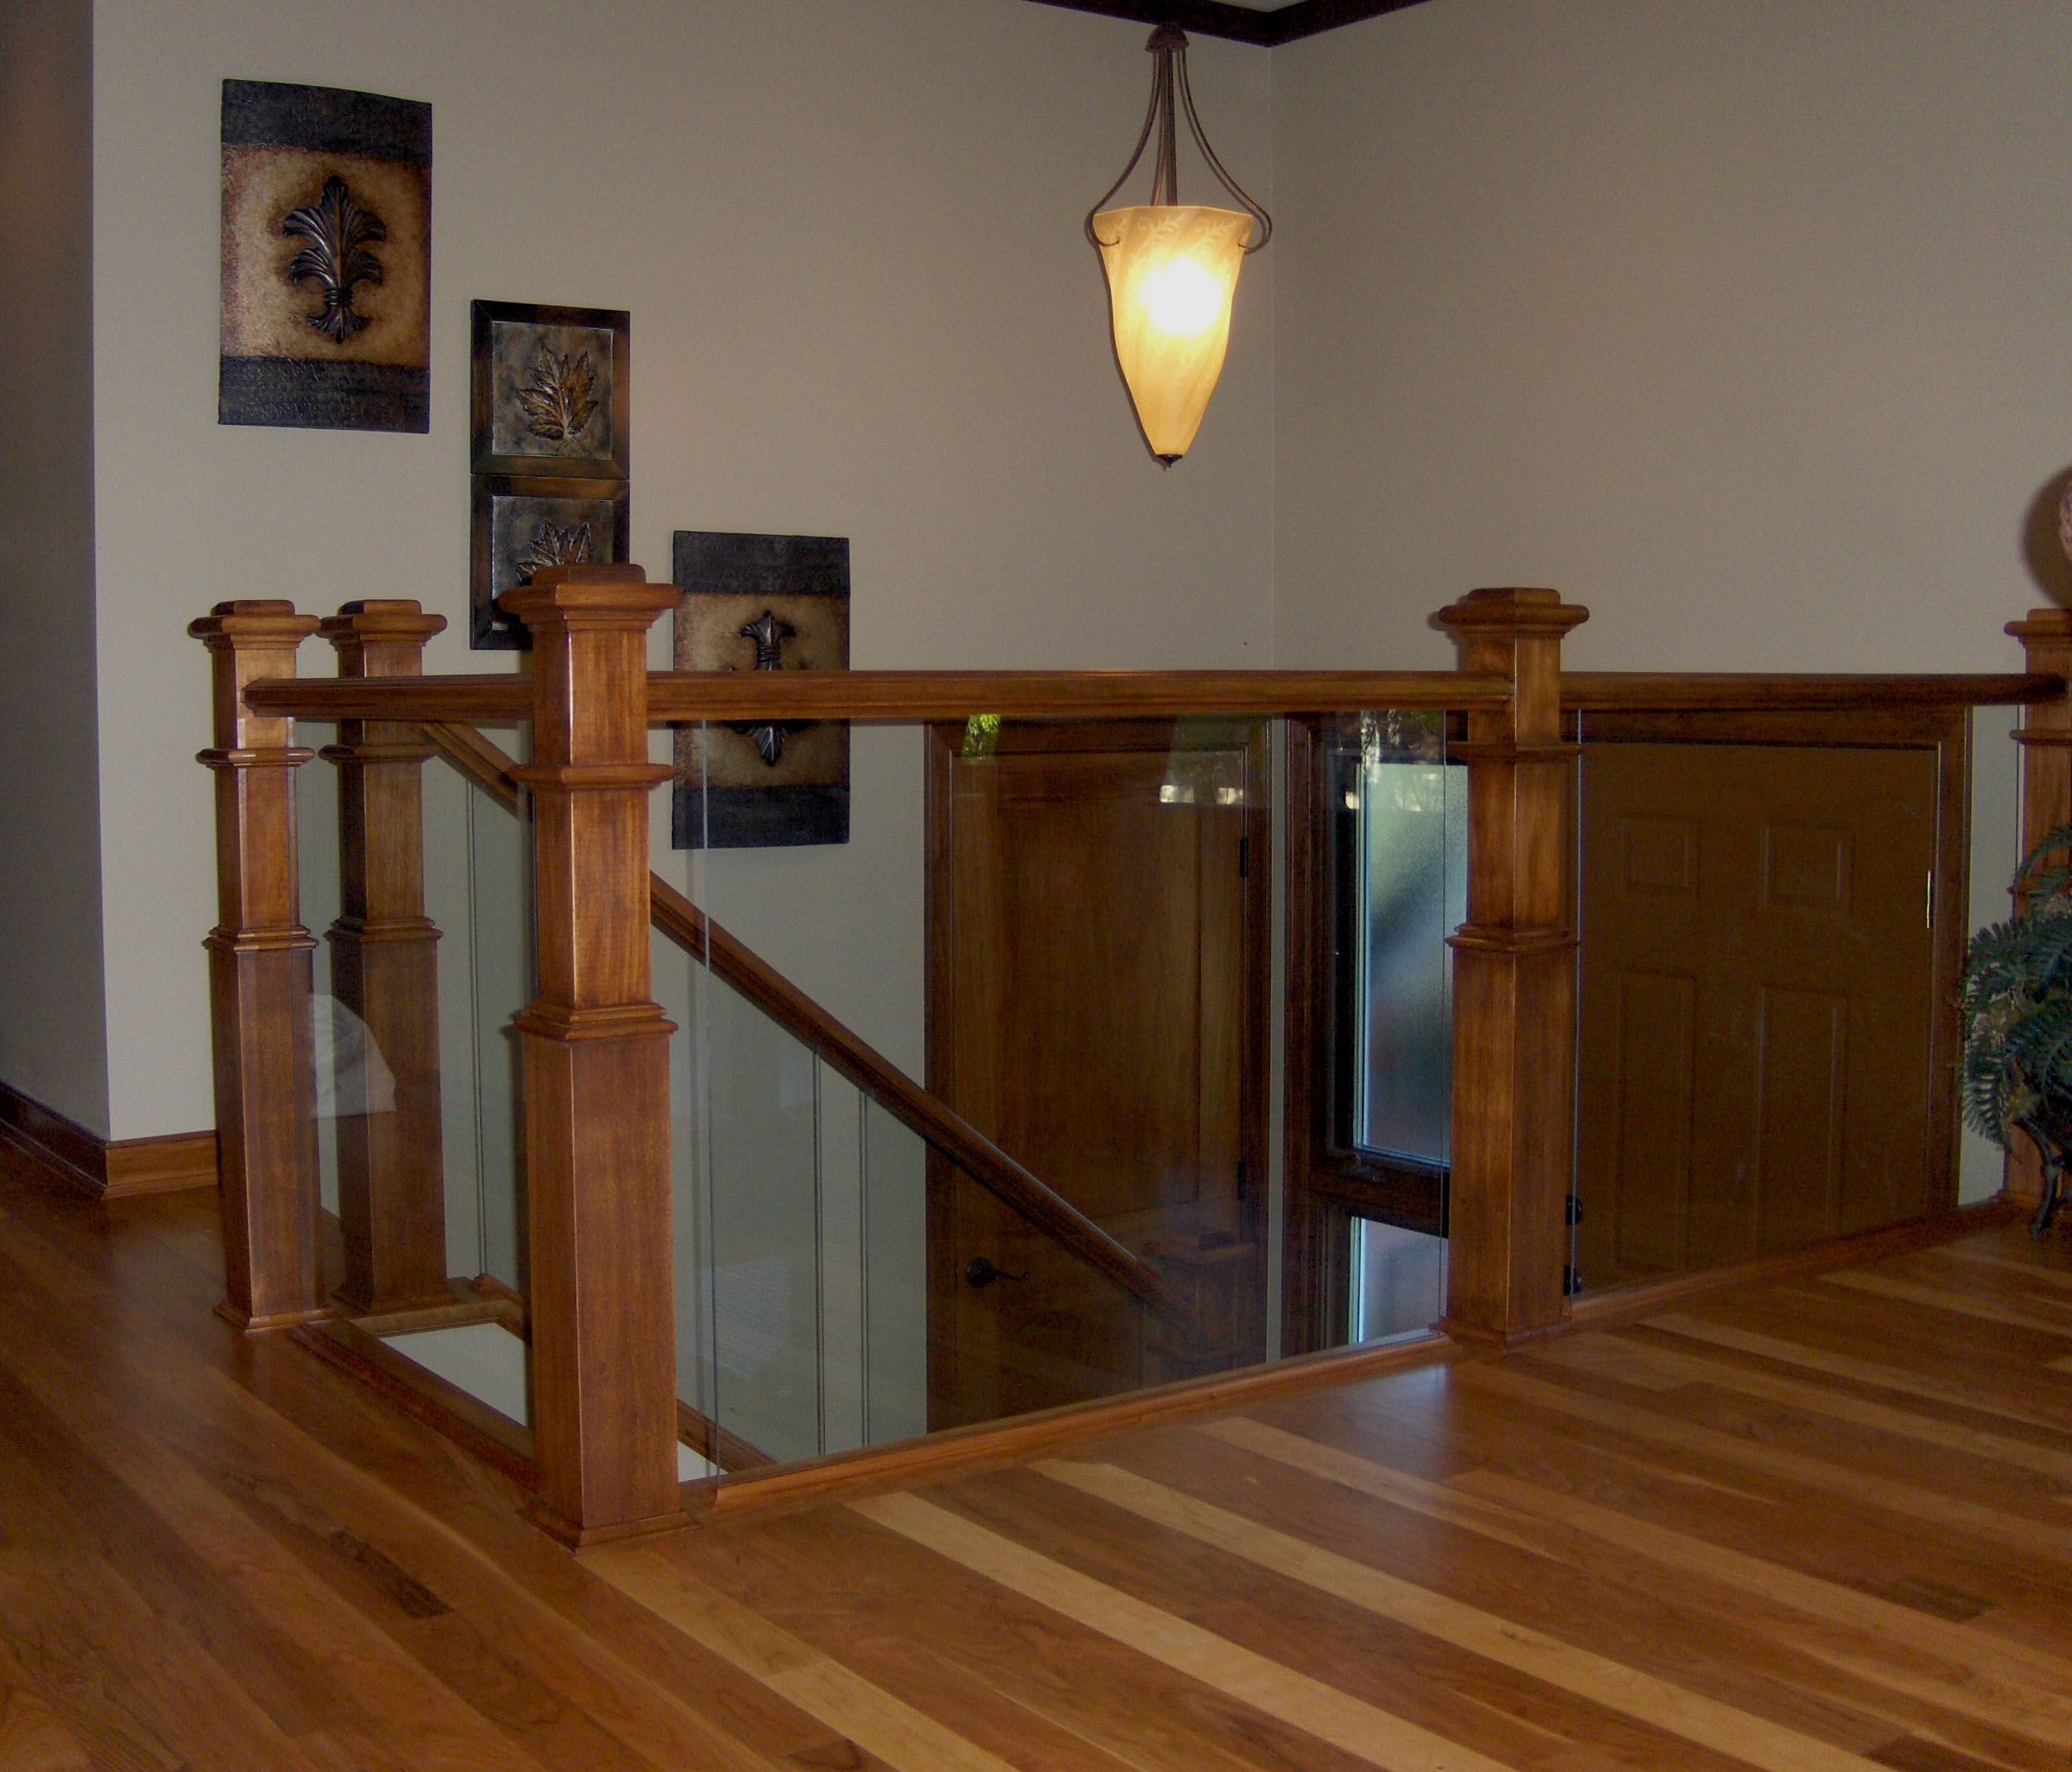 Glass Railings Indoor Ford Metro Glass Deck Railing | Wooden Stairs Railing Design With Glass